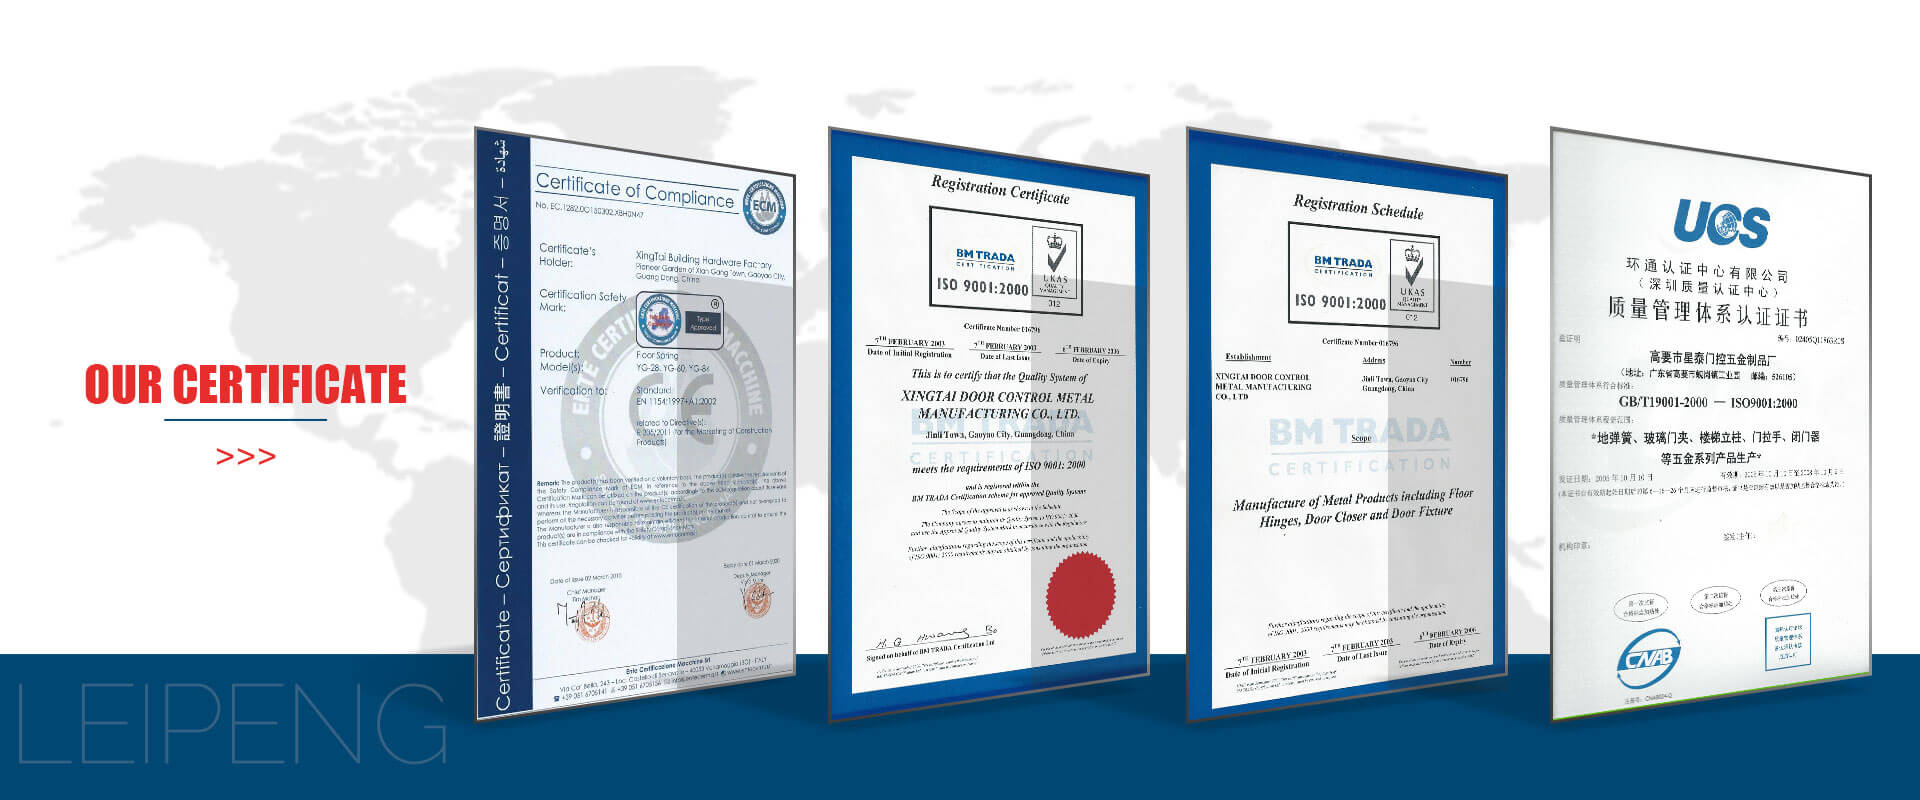 LeiPang Glass Hardware Manufacturer Certificate